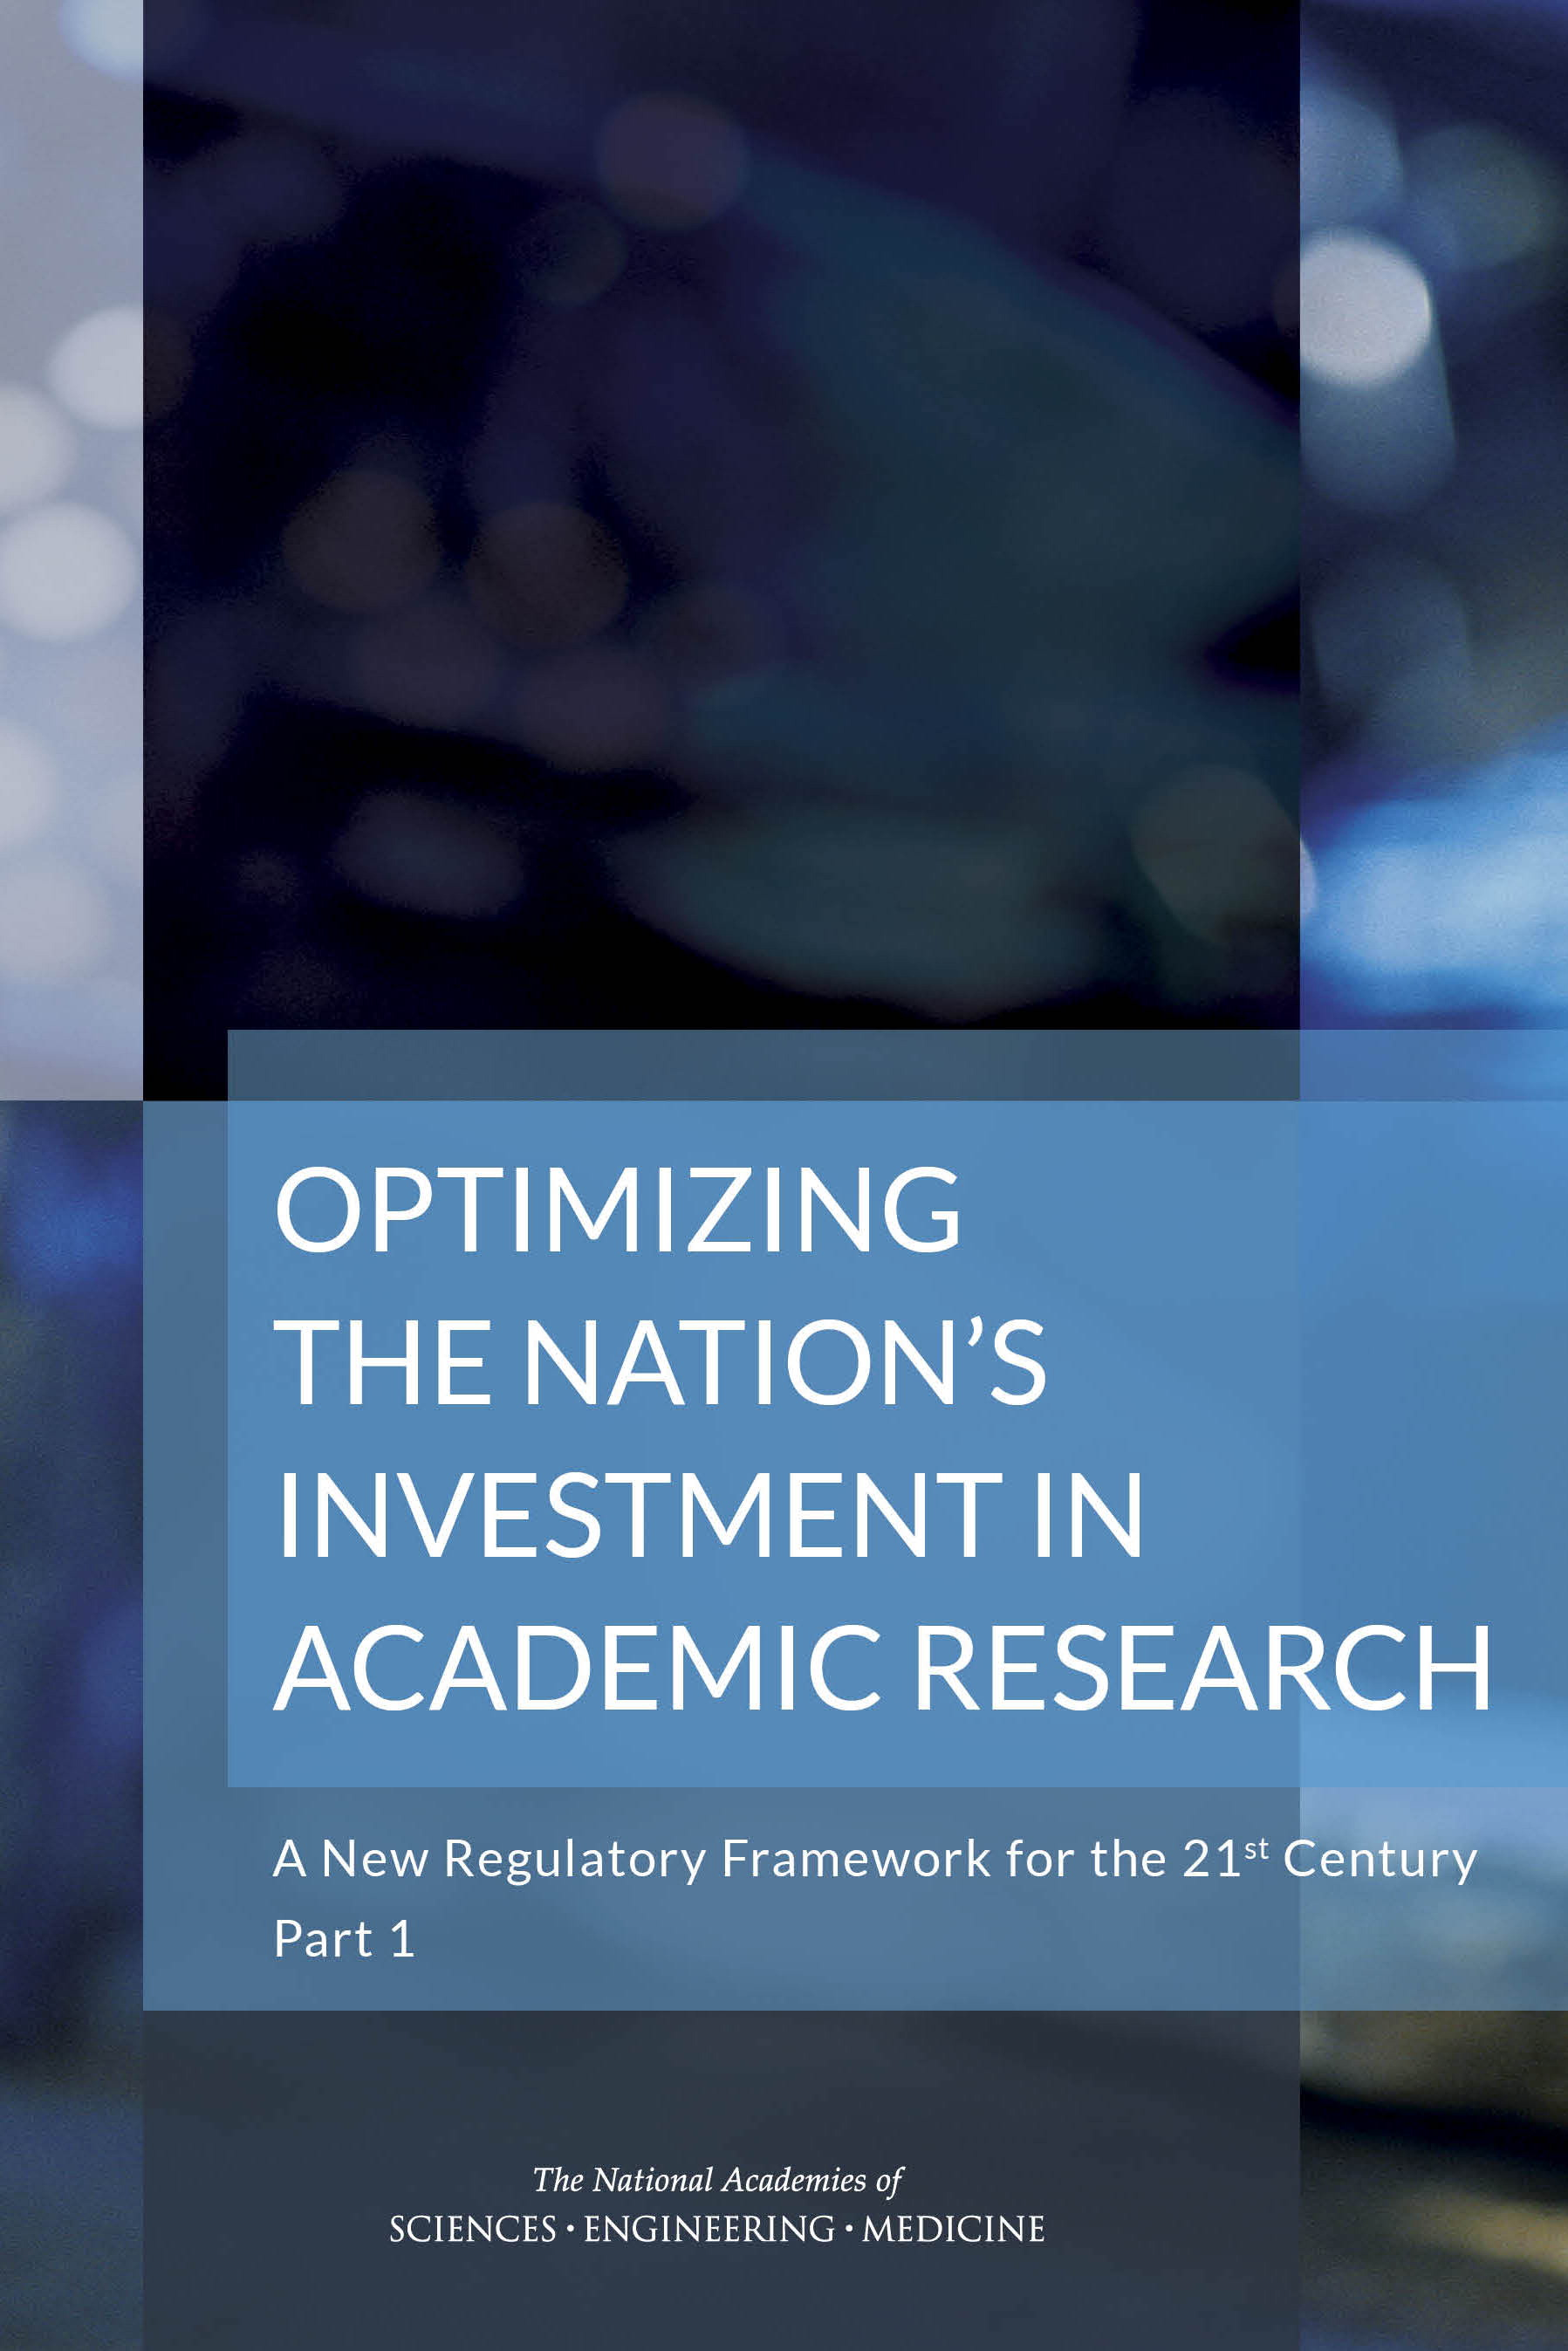 Optimizing the Nation's Investment in Academic Research, Part 1